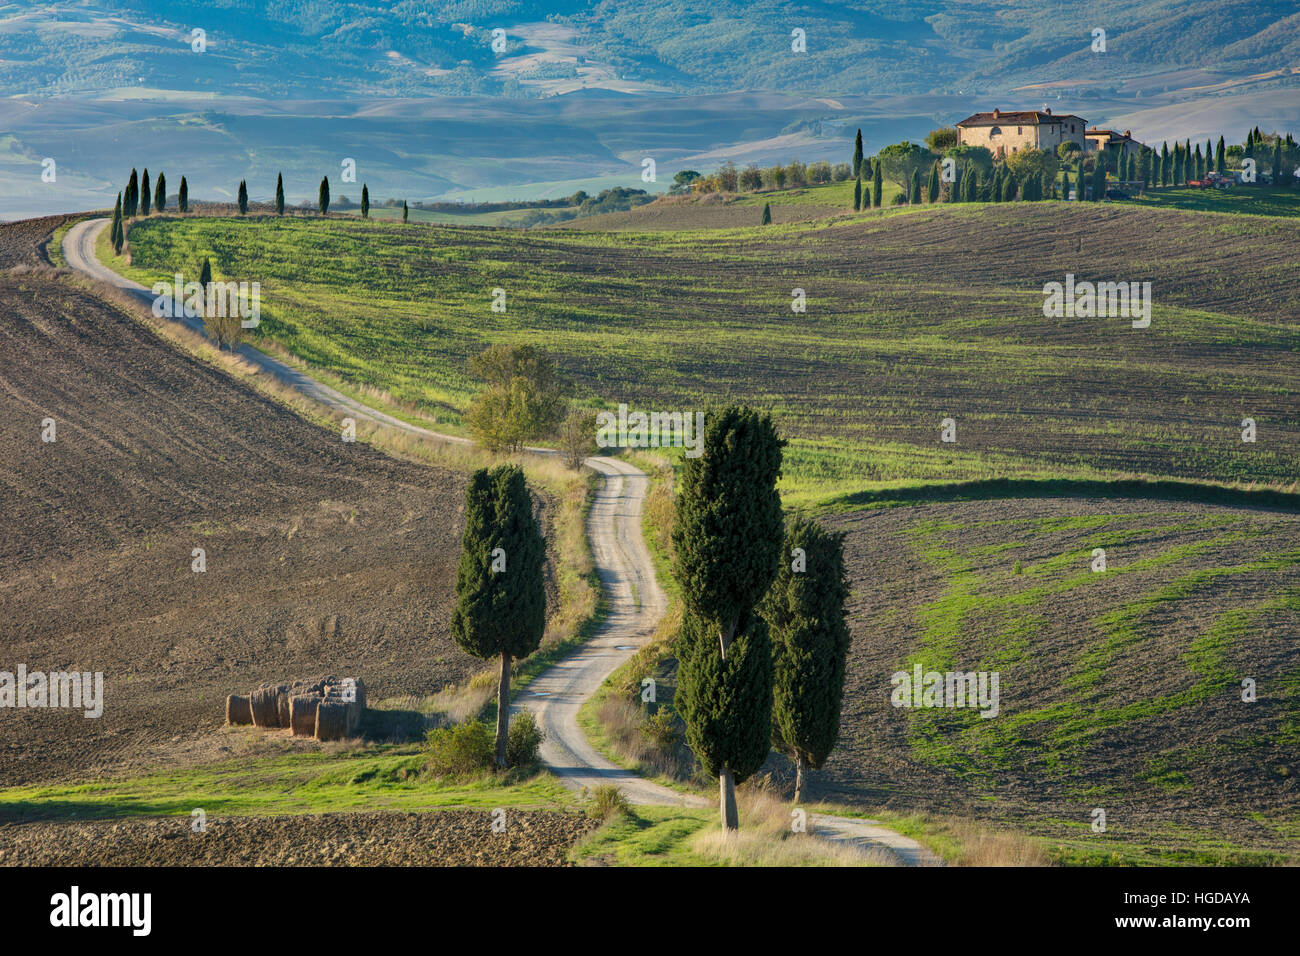 Winding farm track leading to county villa near Pienza, Tuscany, Italy - Stock Image